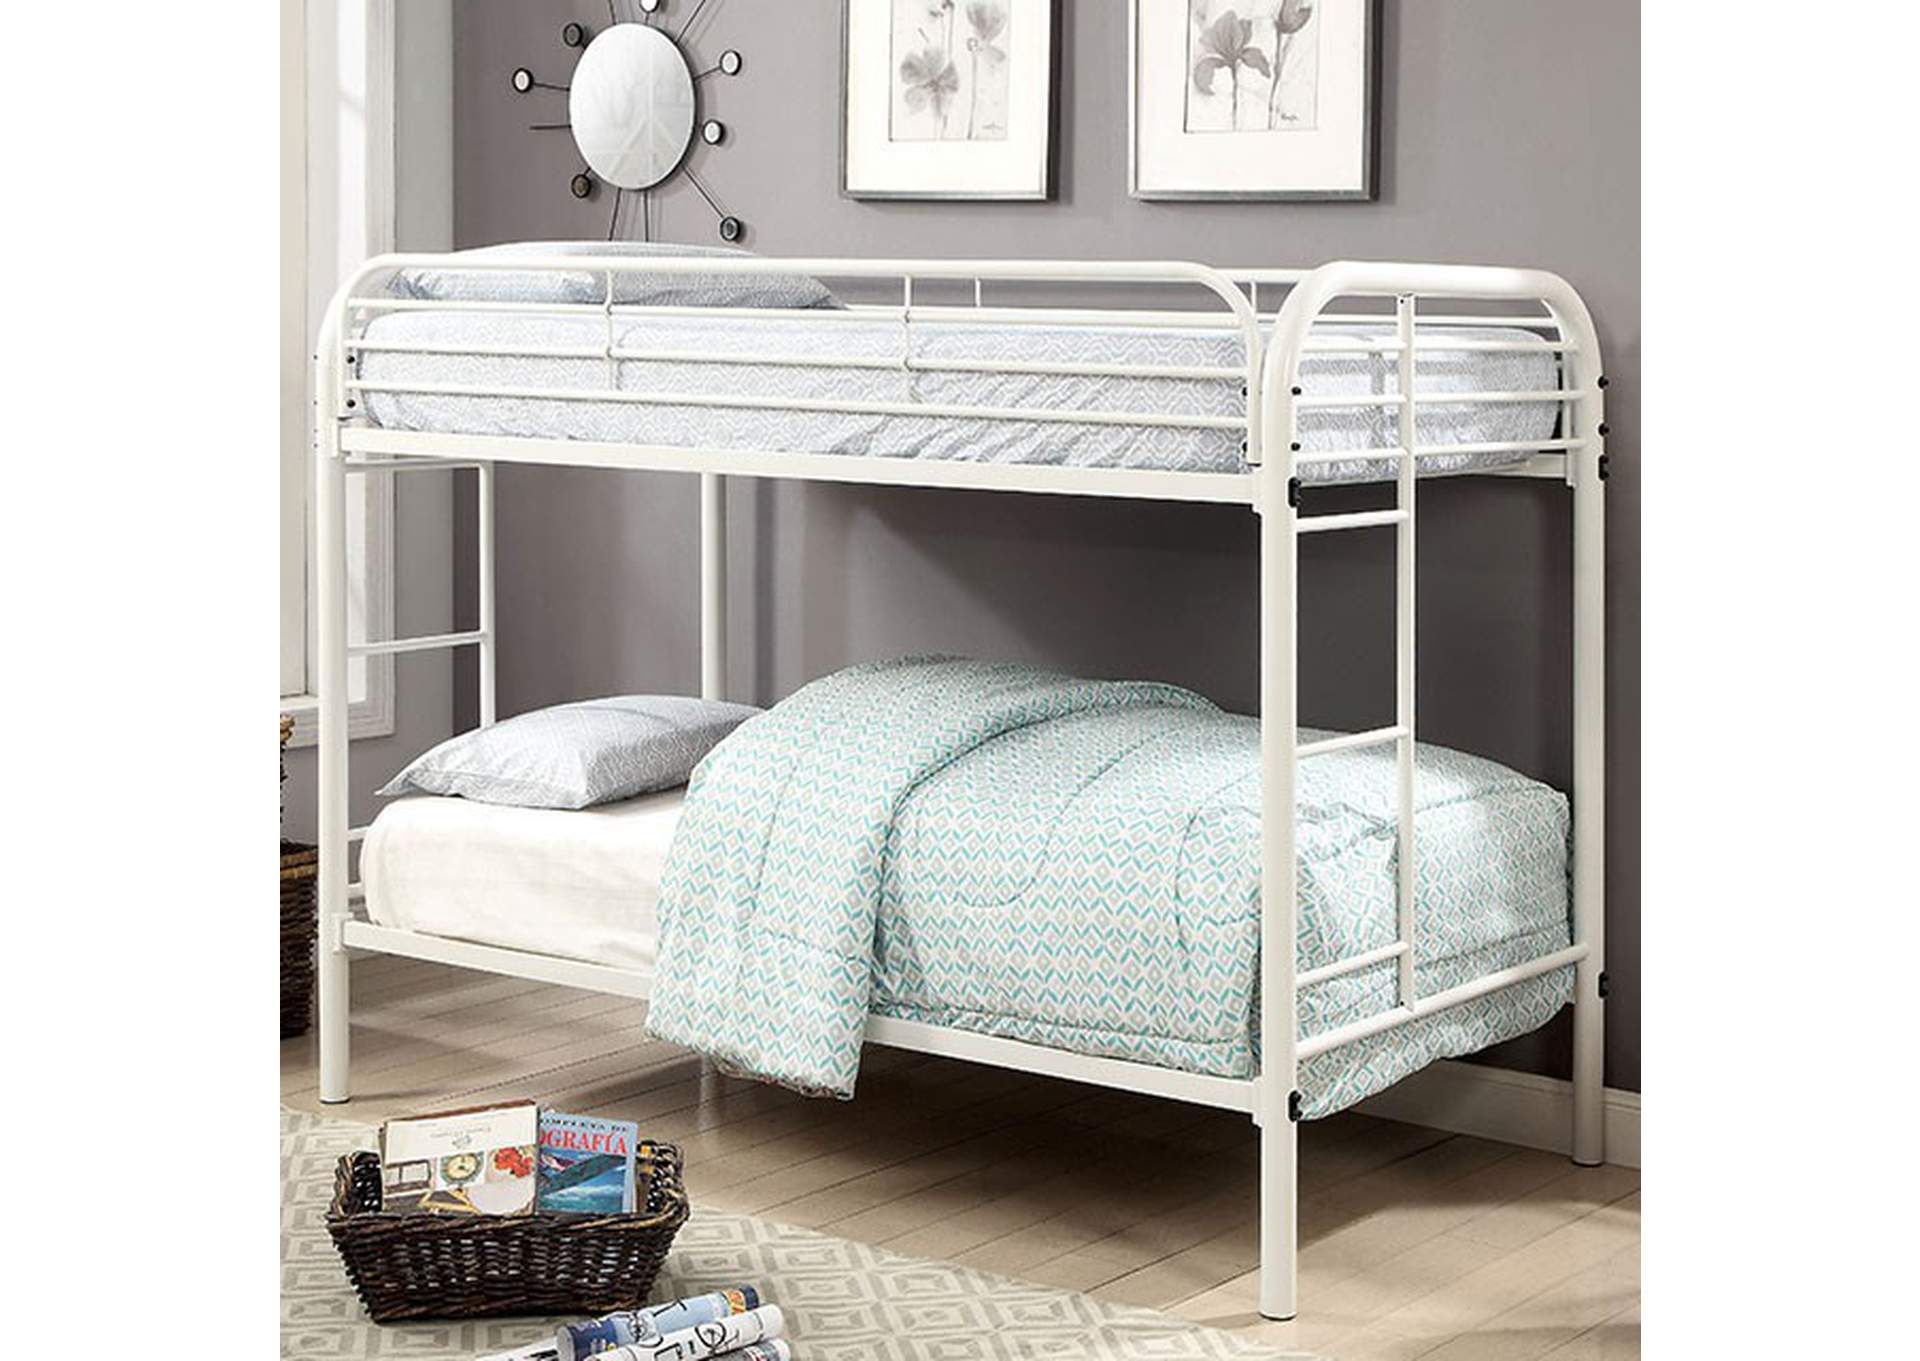 Opal White Twin/Twin Metal Bunk Bed,Furniture of America